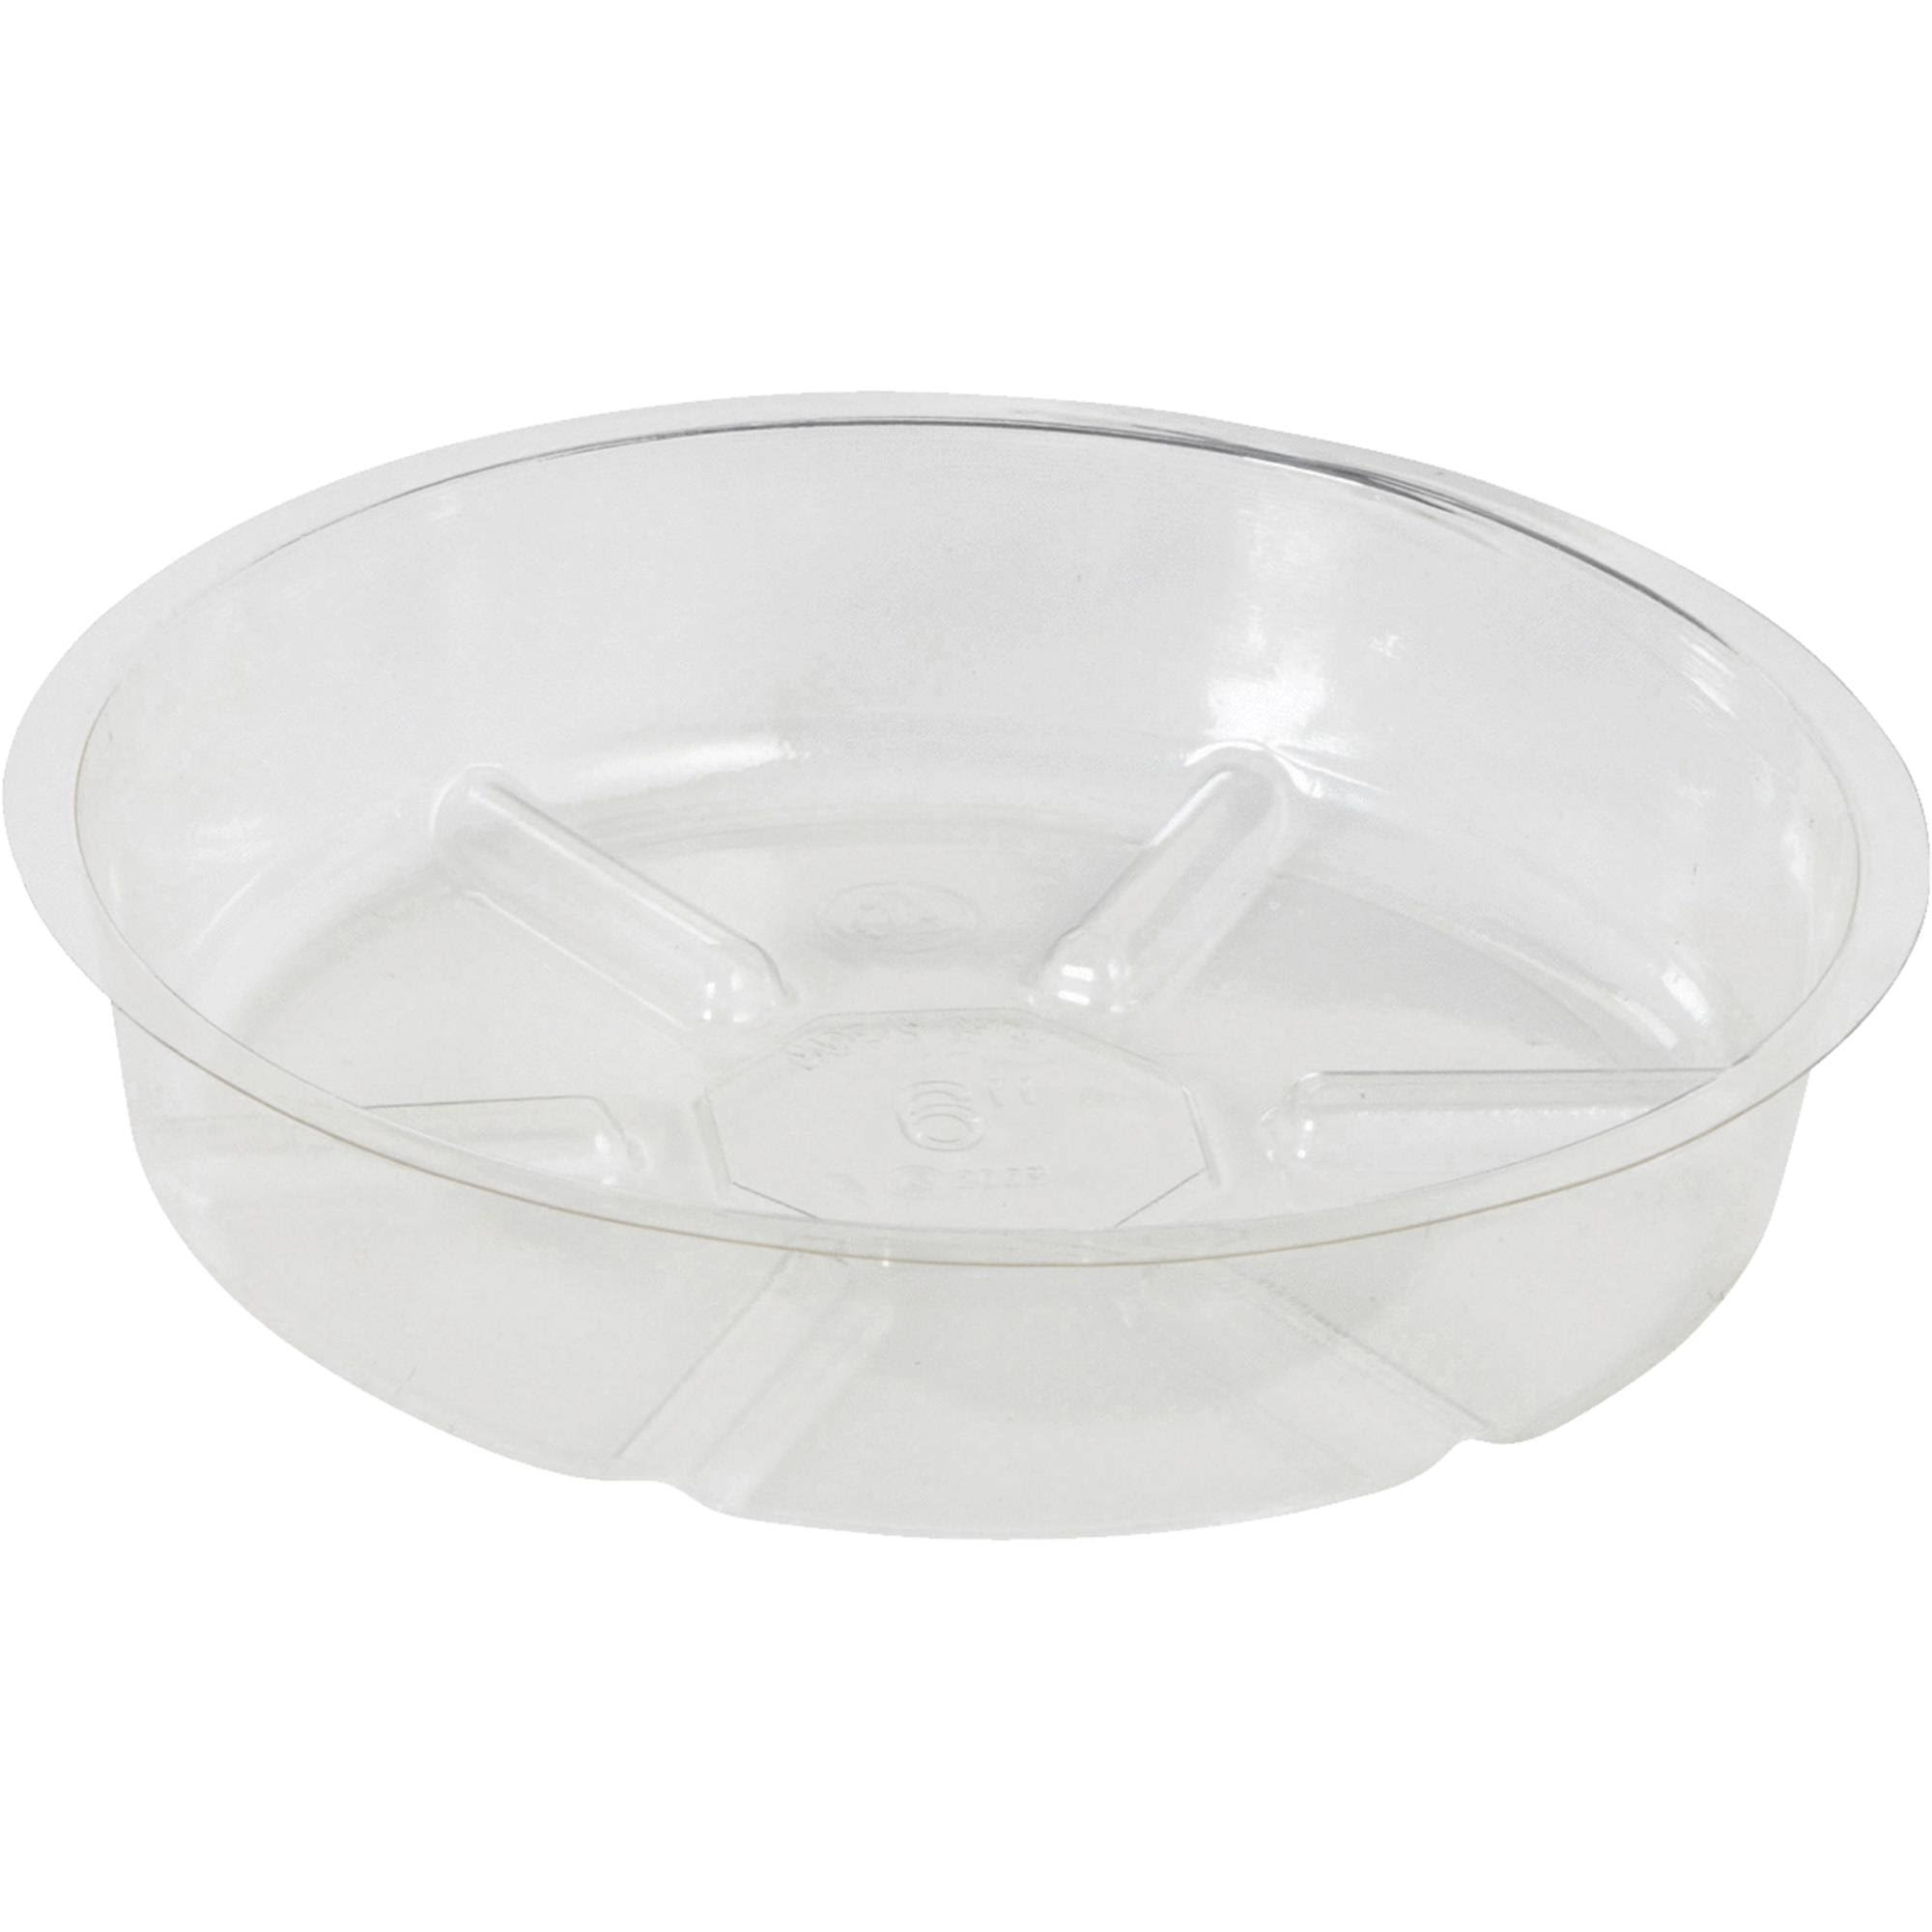 Sim Supply Vinyl Saucer - Clear, 6""